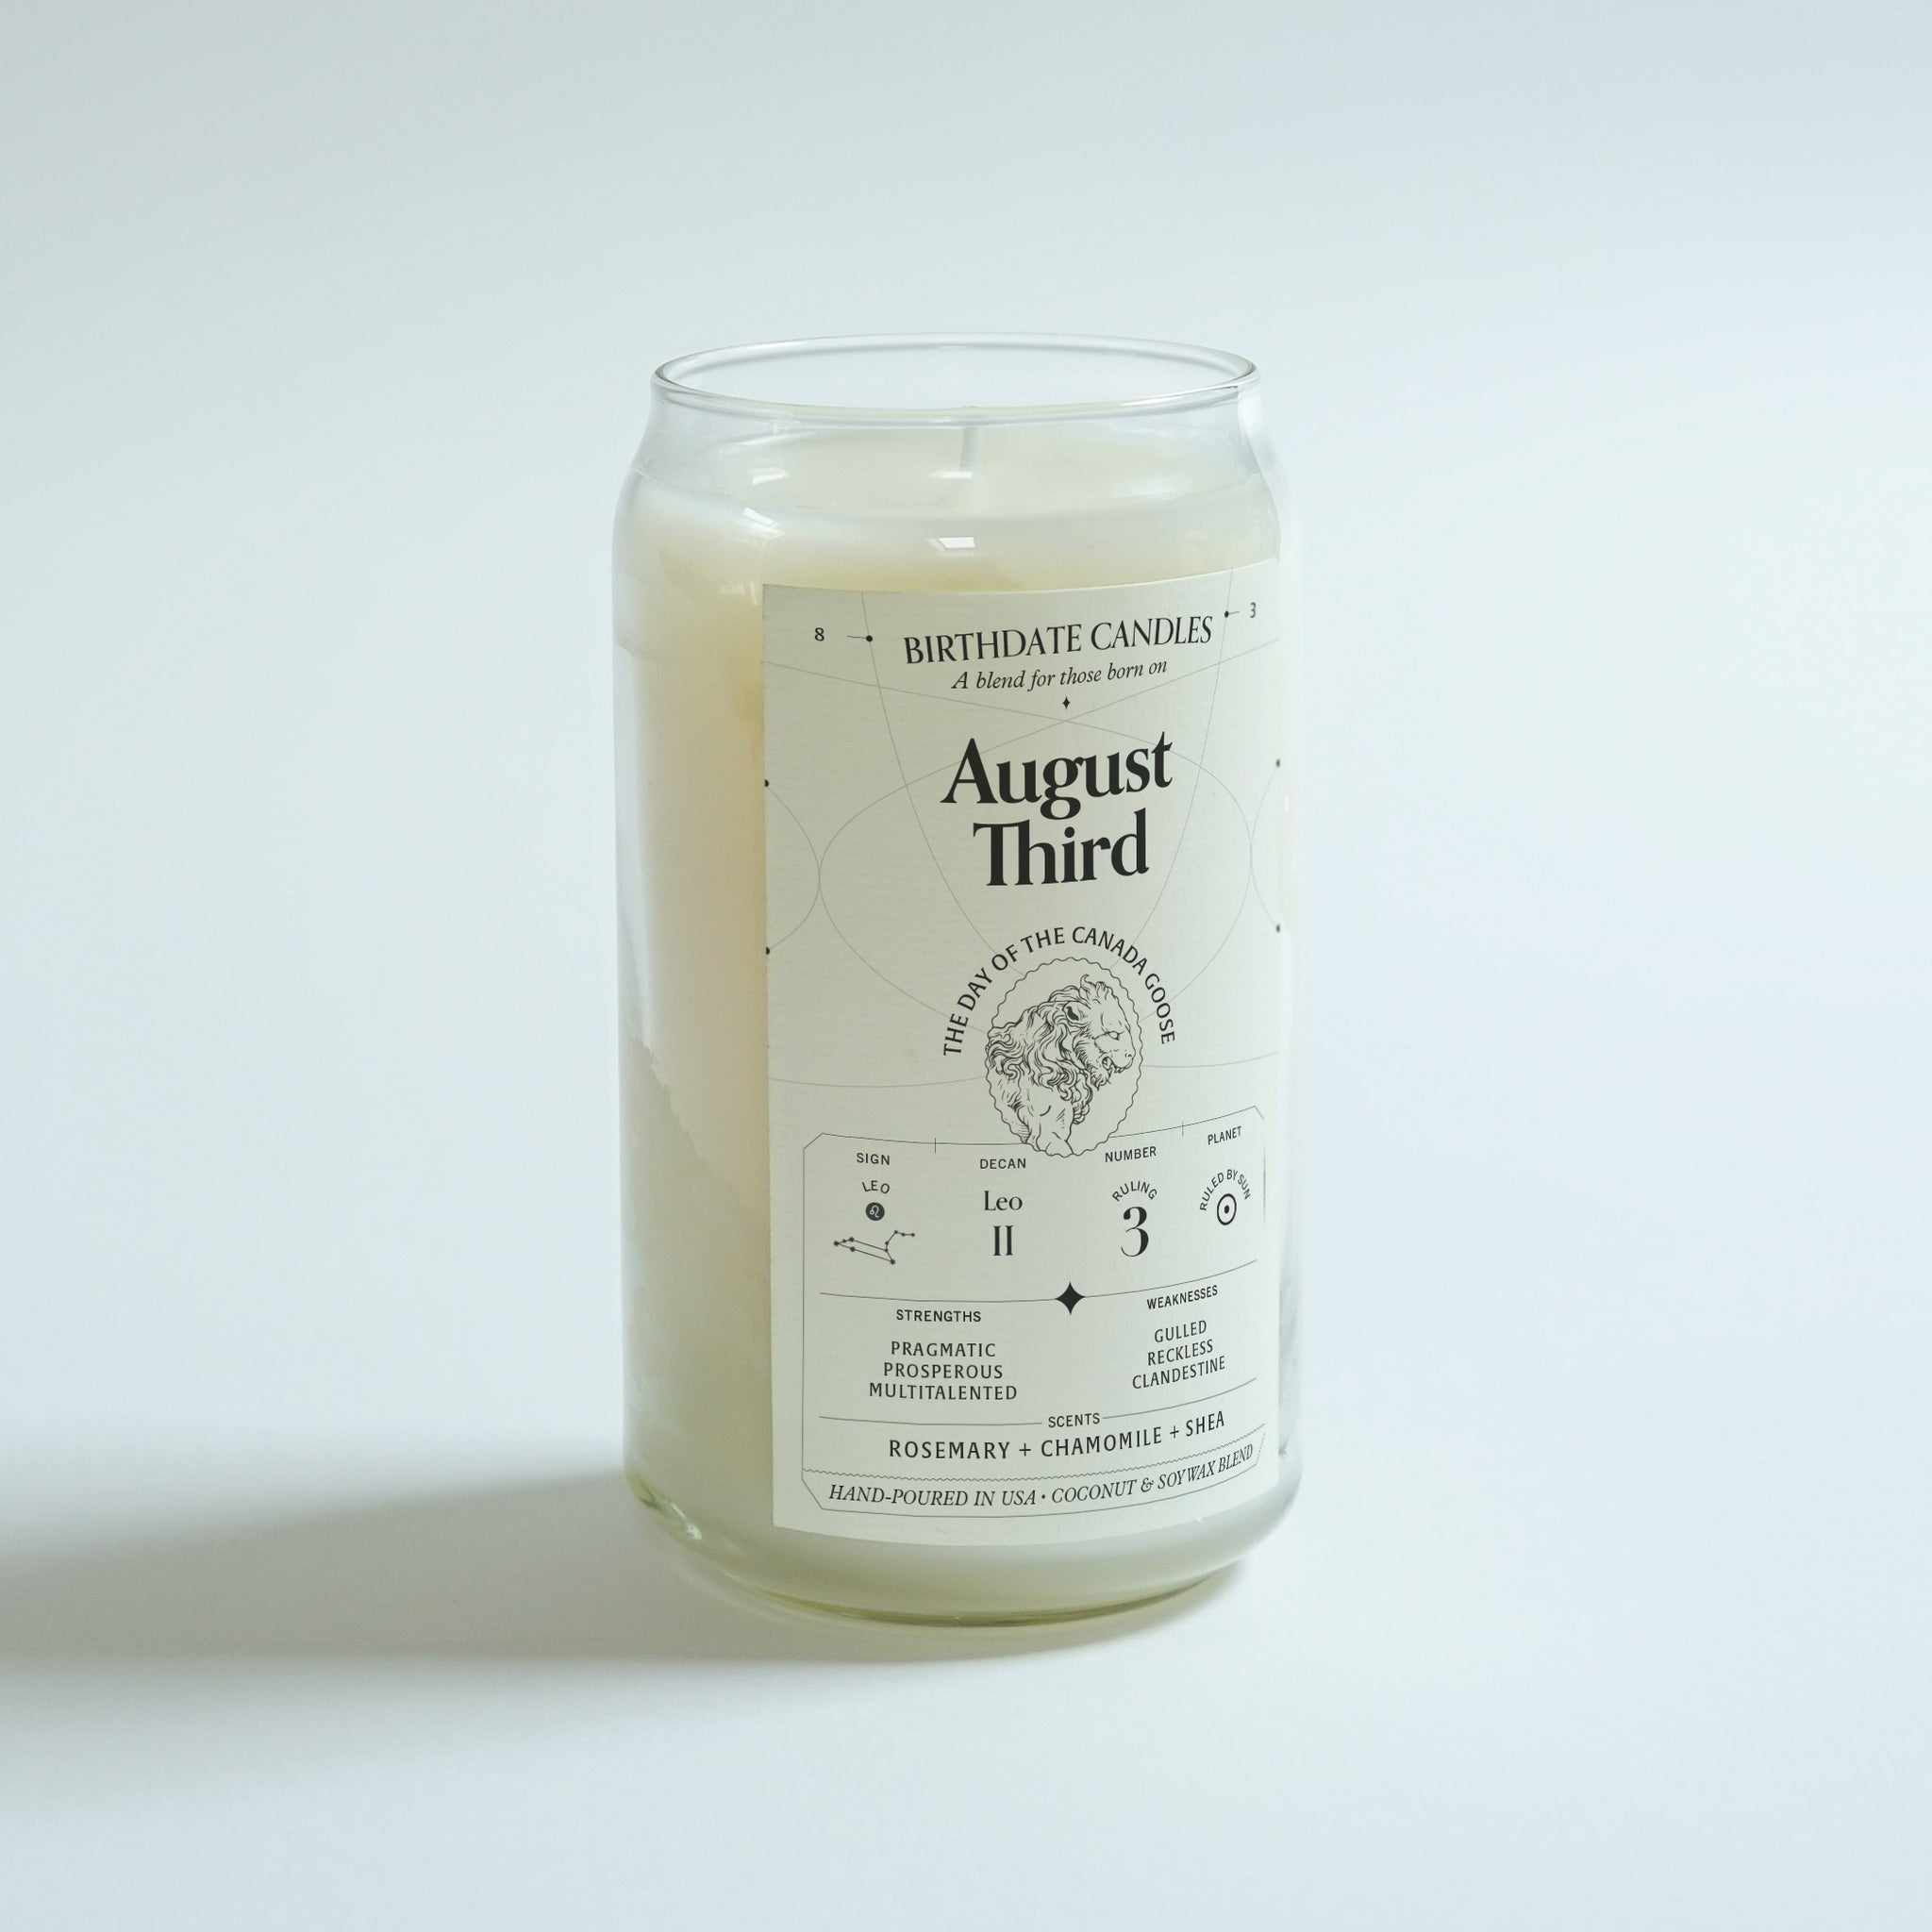 The August Third Candle